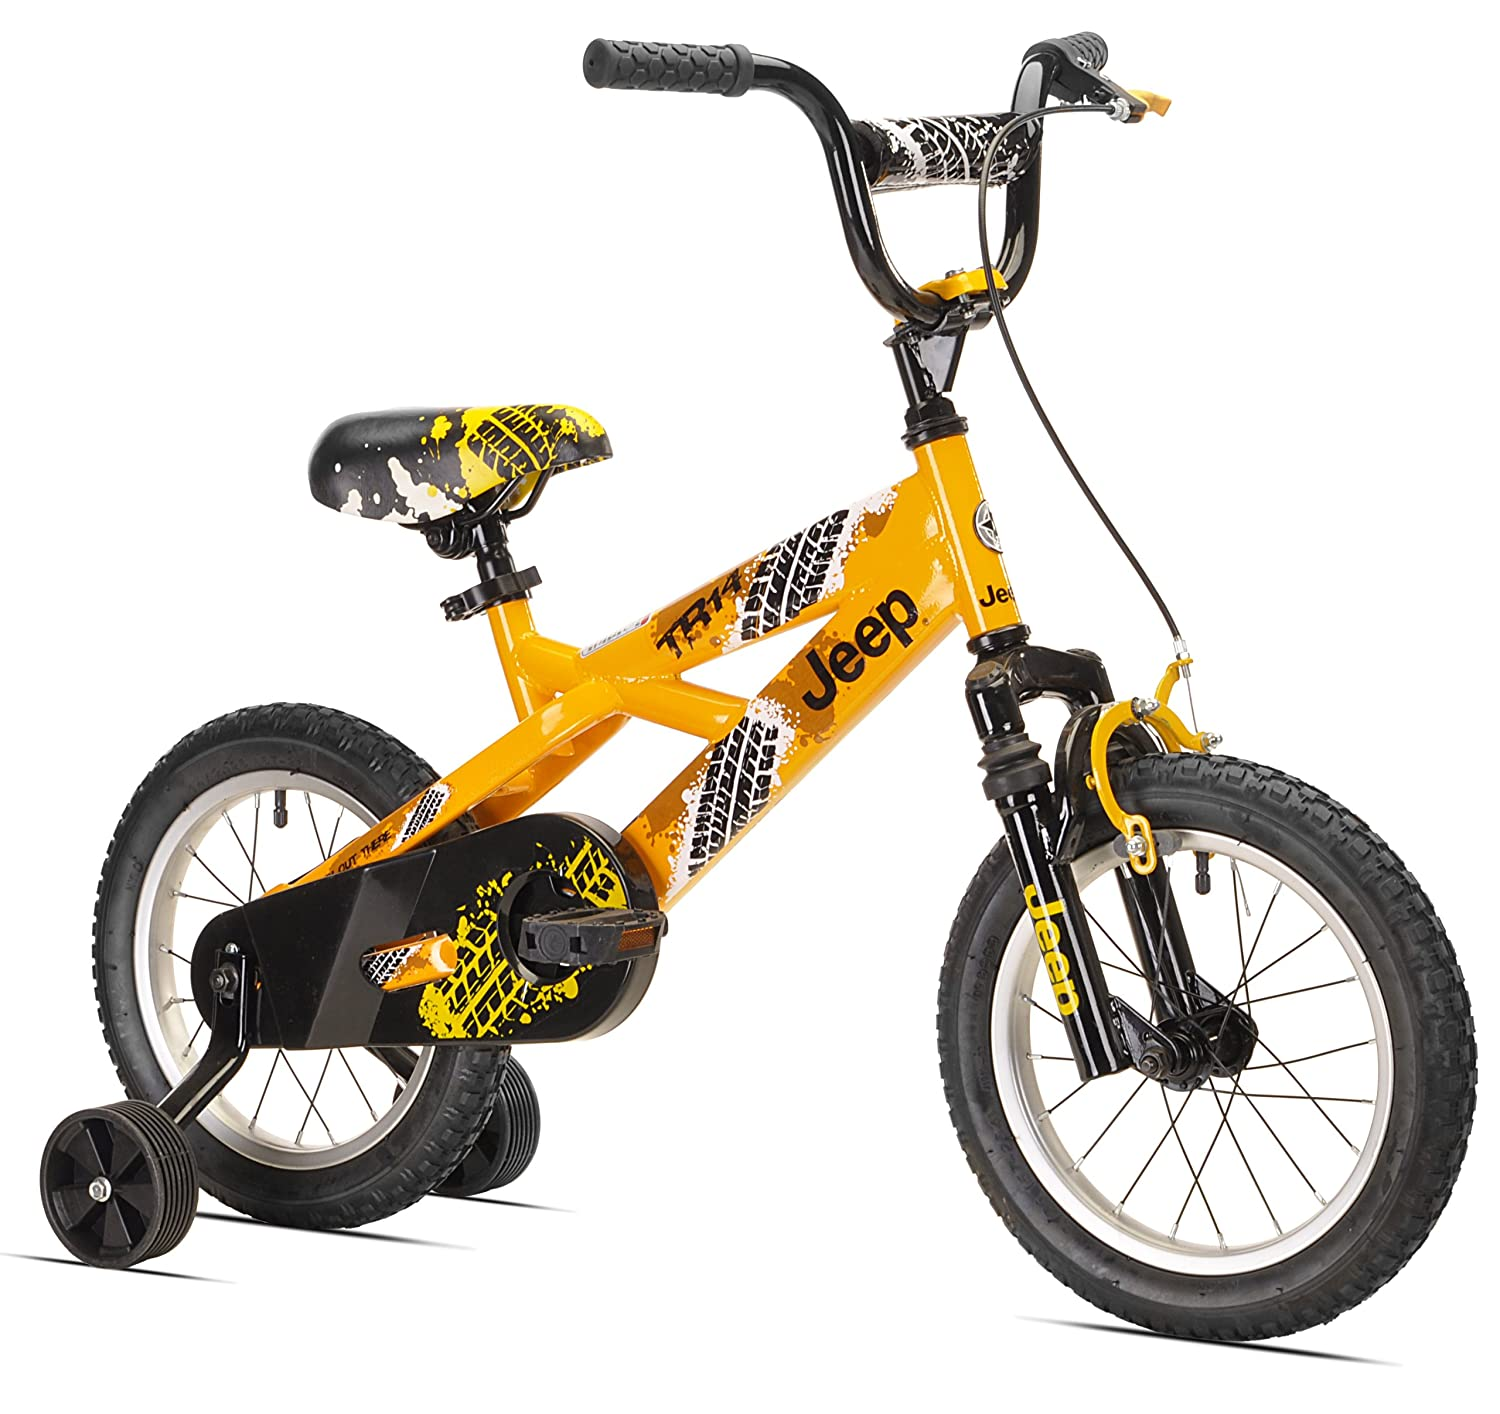 Bike 14 Inch Jeep Boy s Bike Inch